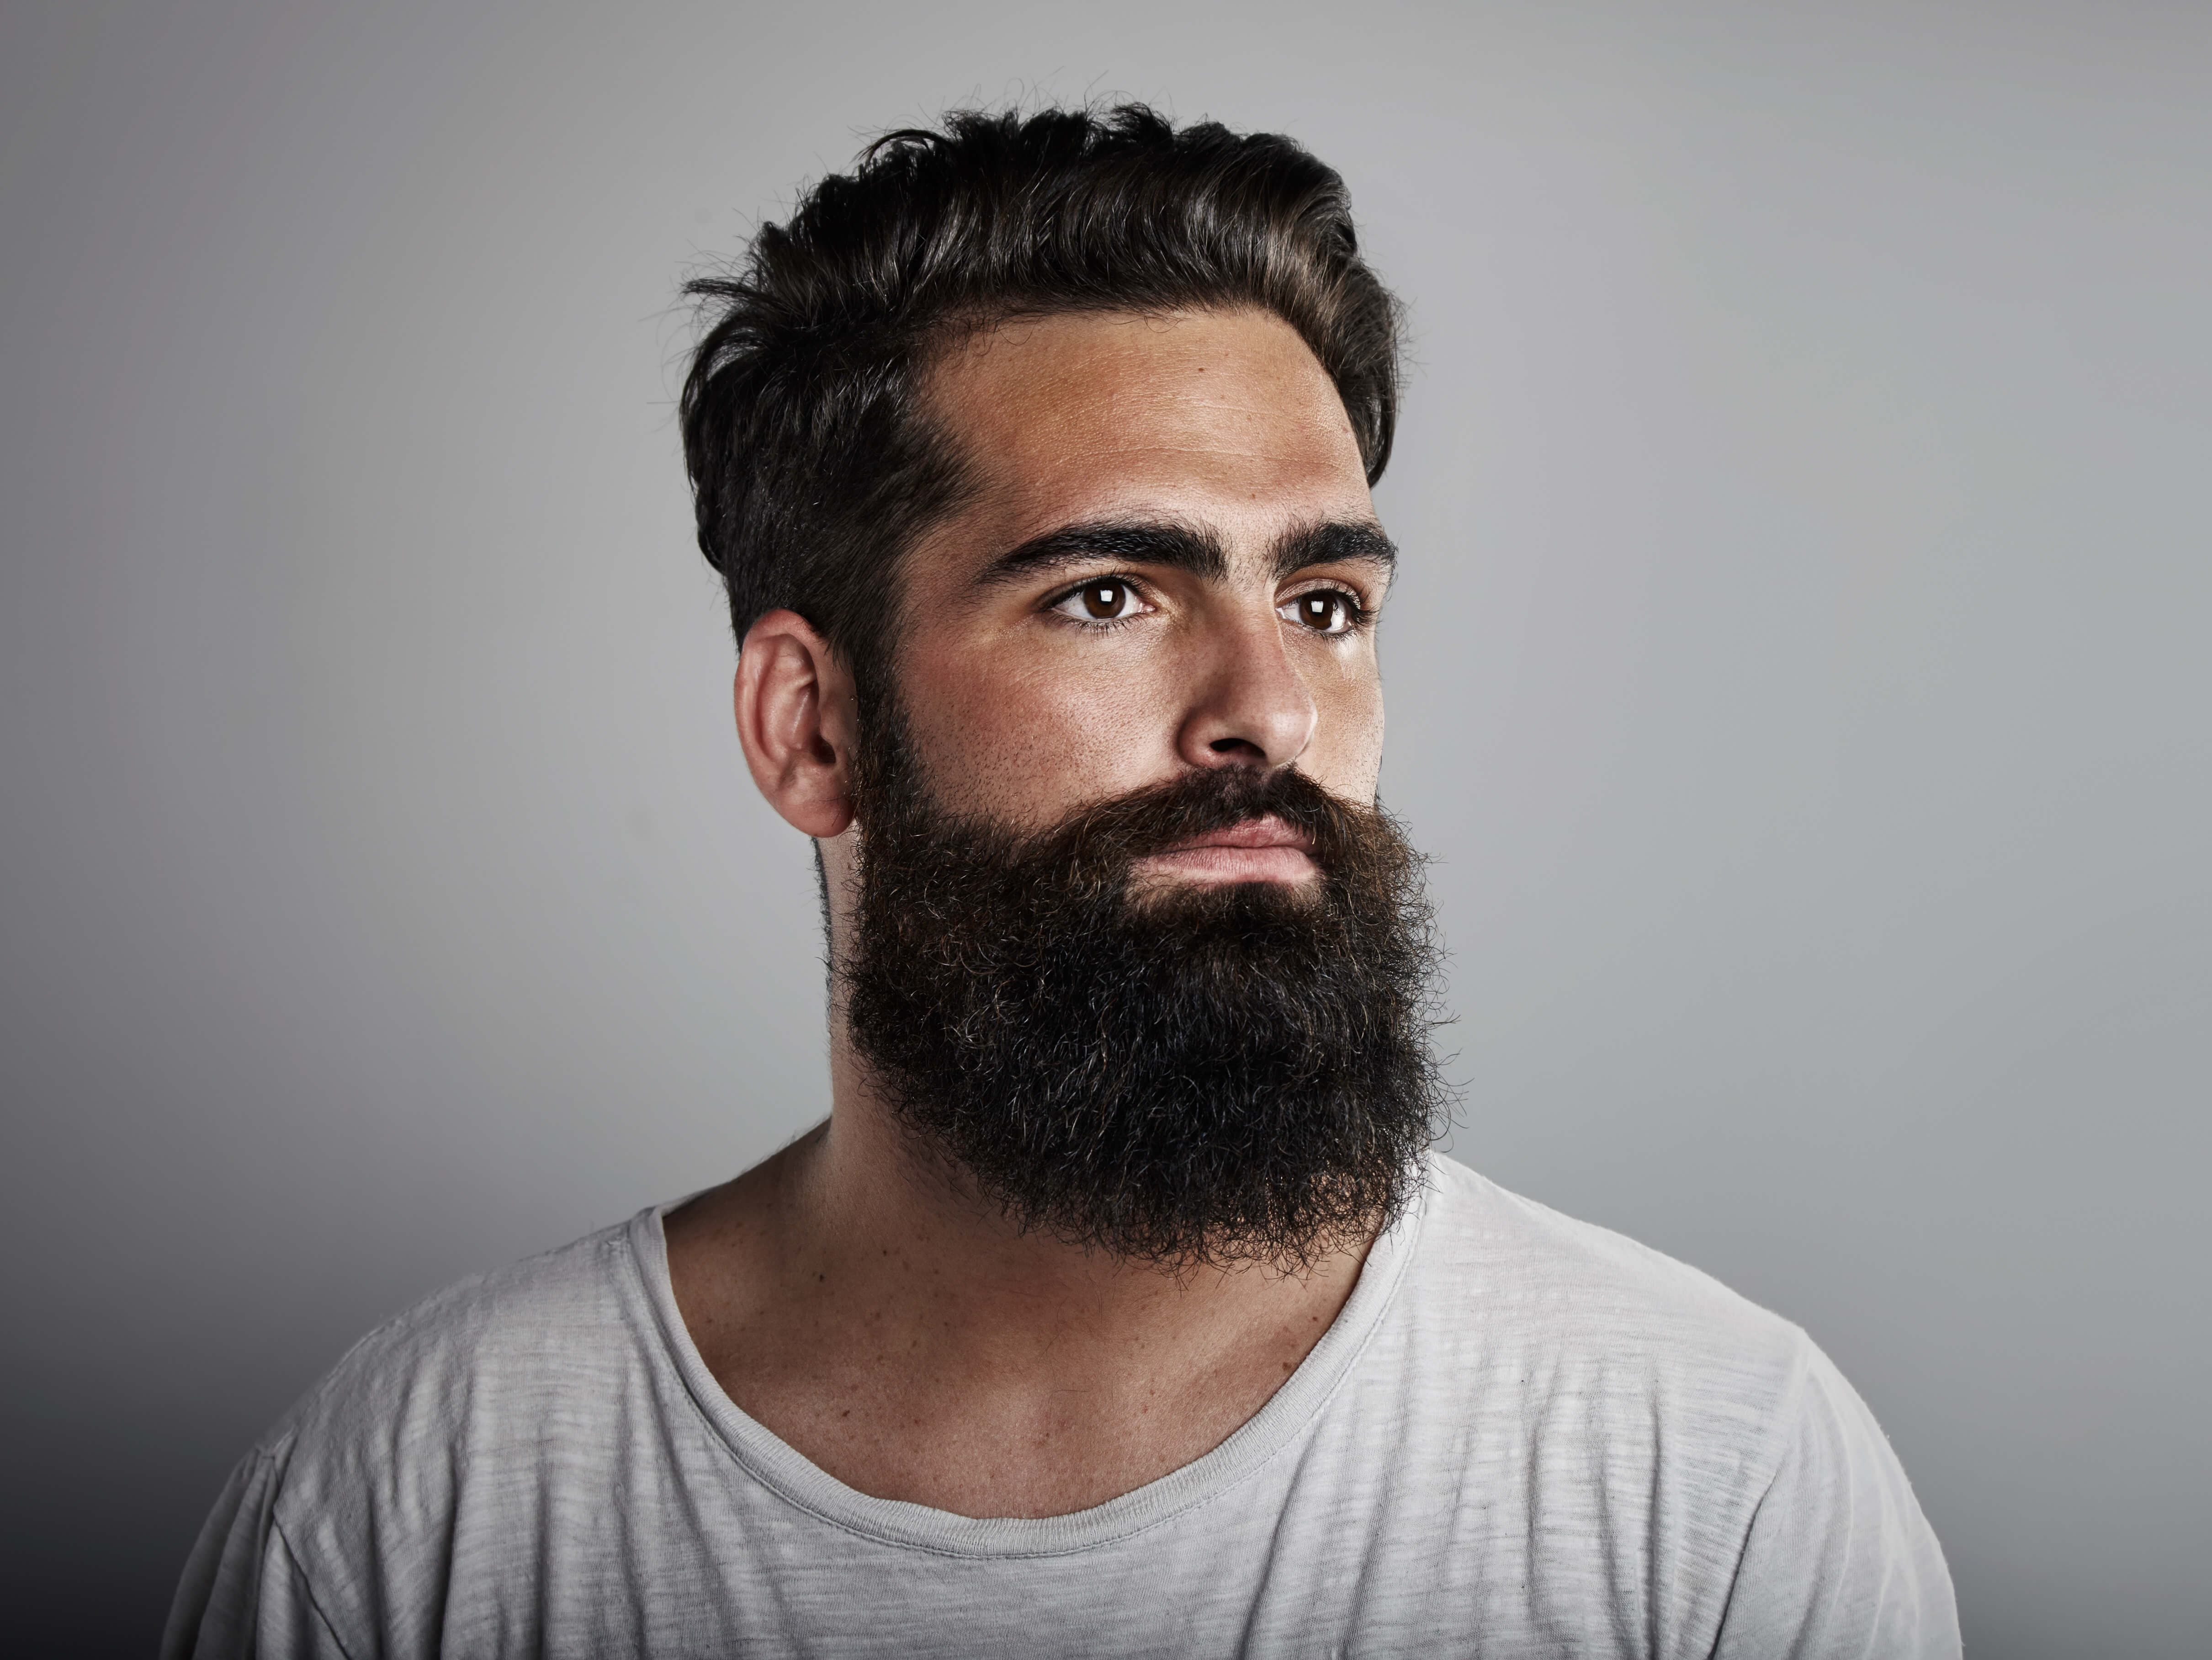 man with long beard photo - 1